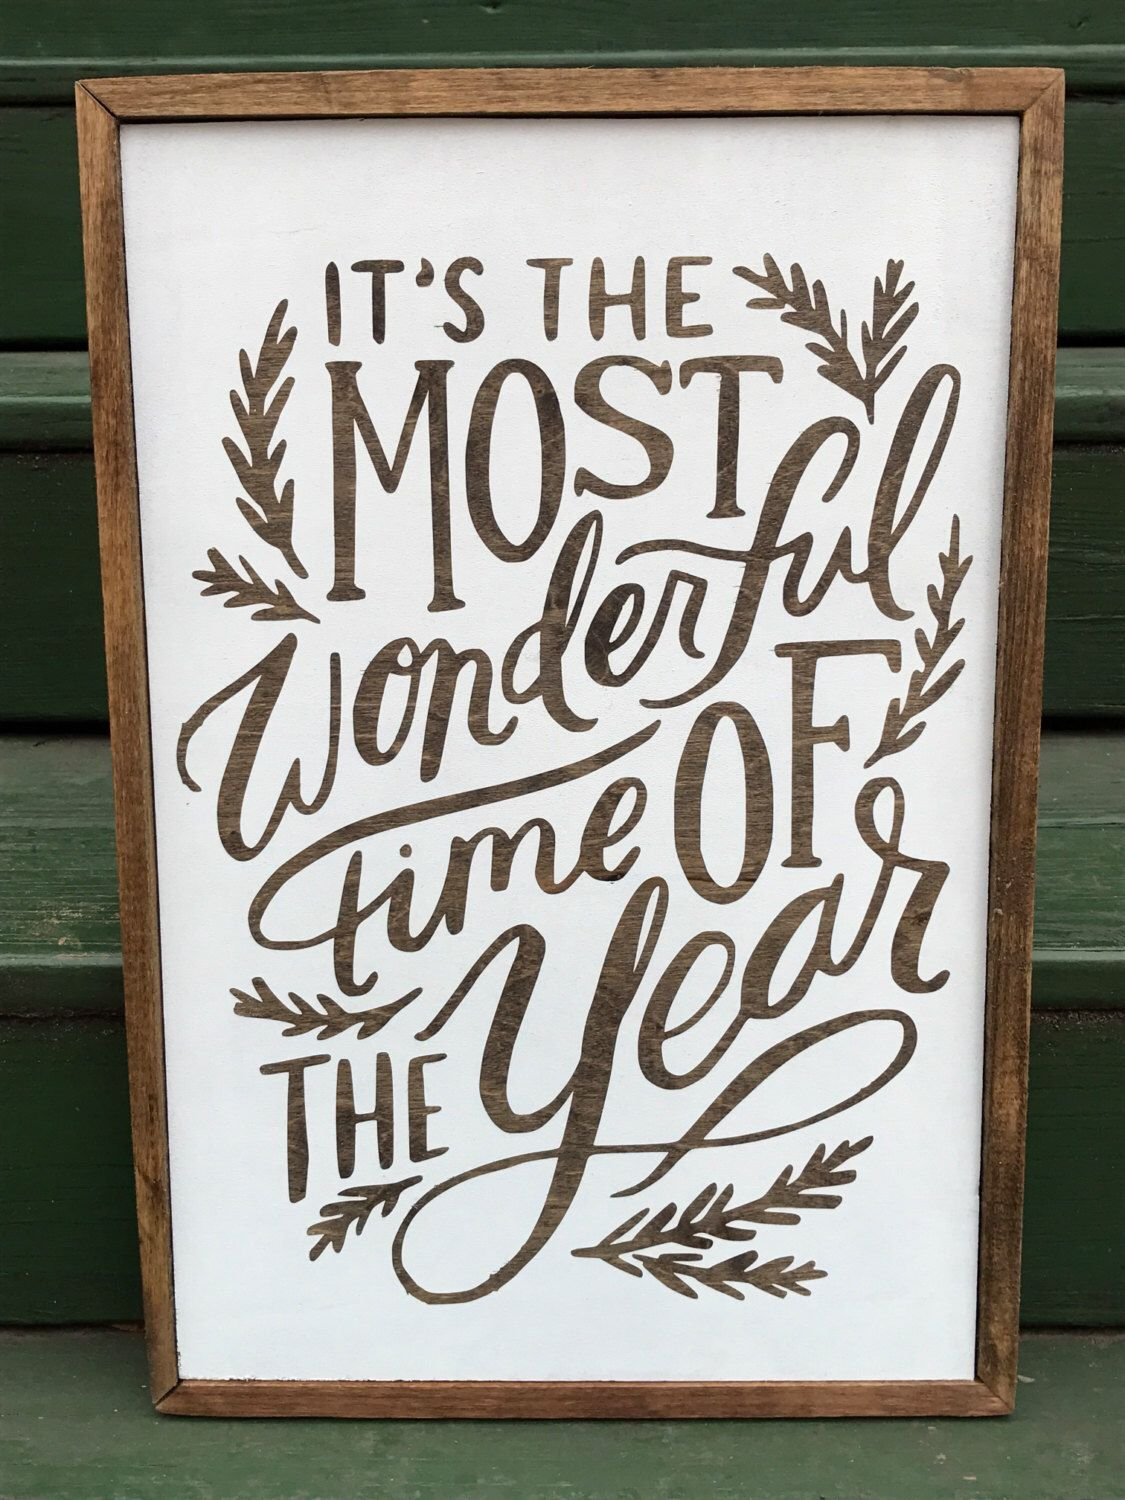 It's the most wonderful time of the year! by EricaTaylorandCo on Etsy https://www.etsy.com/listing/481235978/its-the-most-wonderful-time-of-the-year